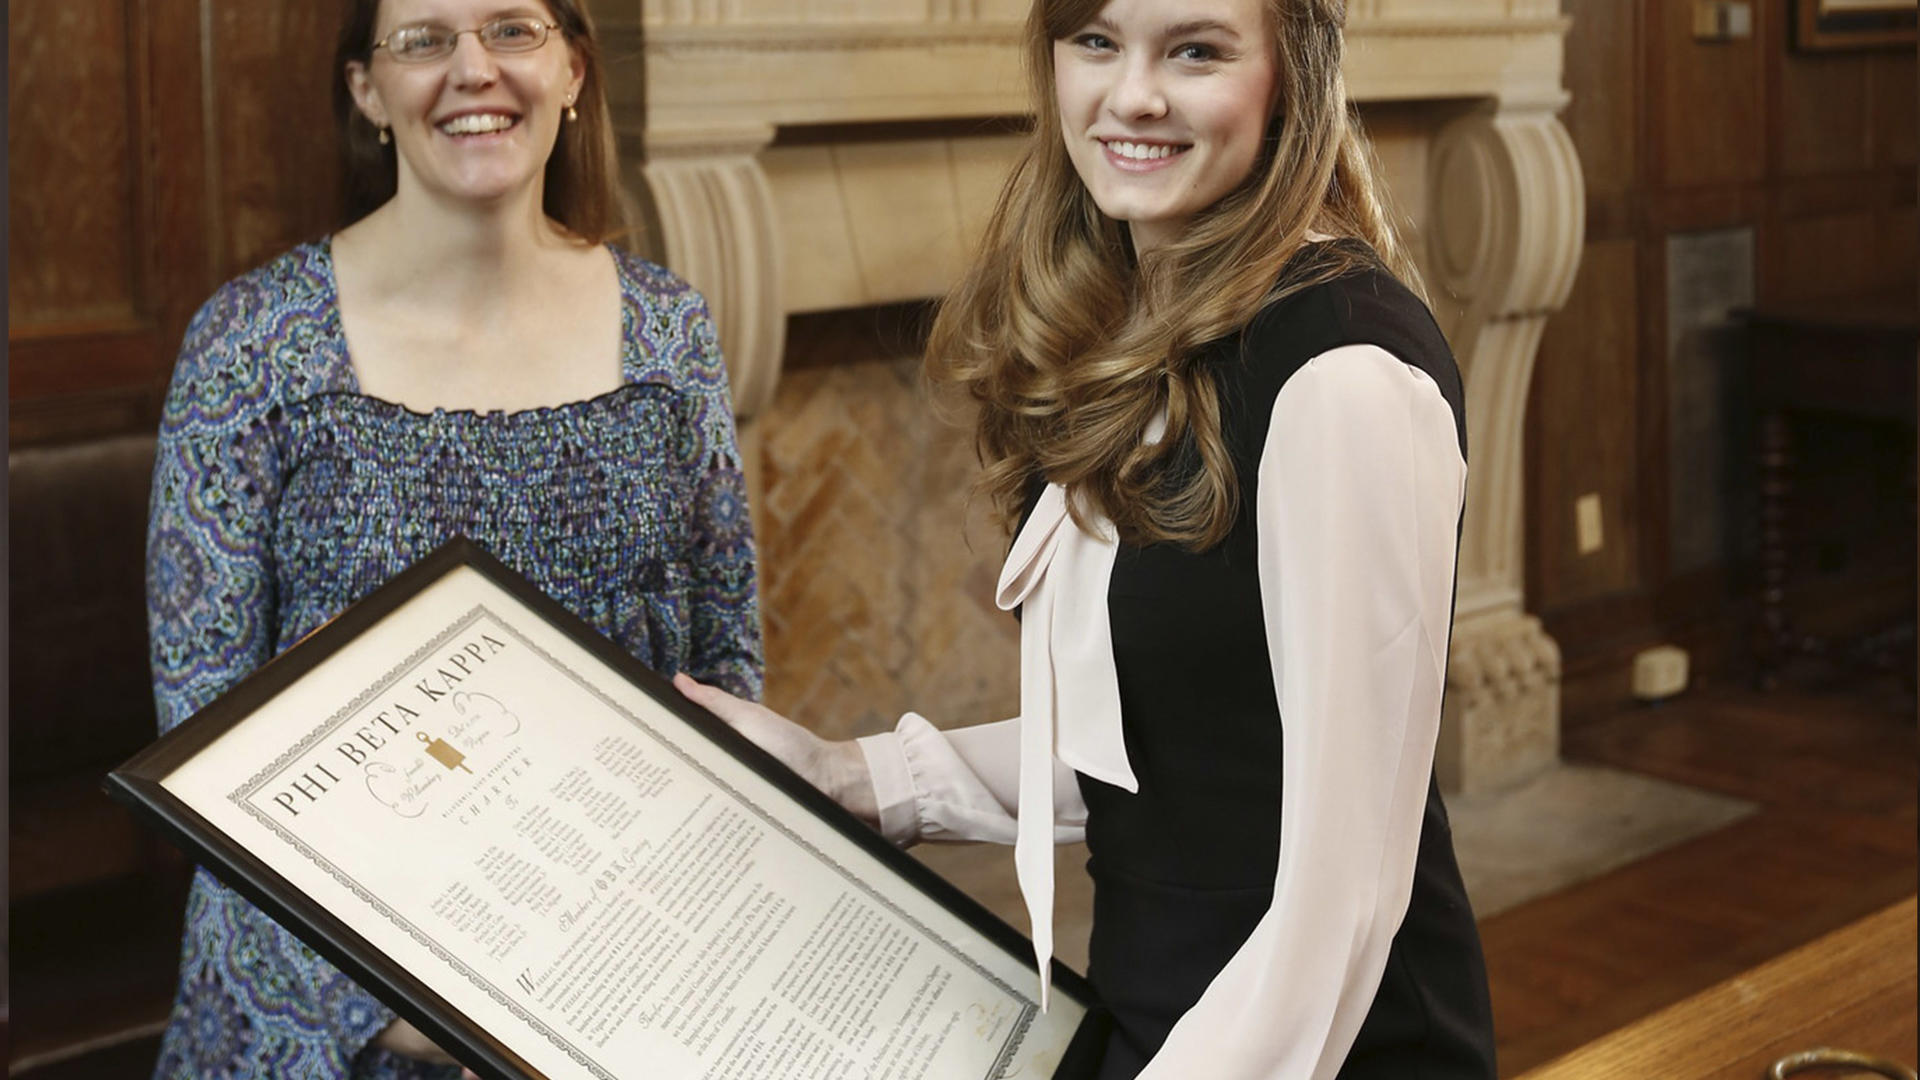 a student holds a Phi Beta Kappa certificate while a professor looks on